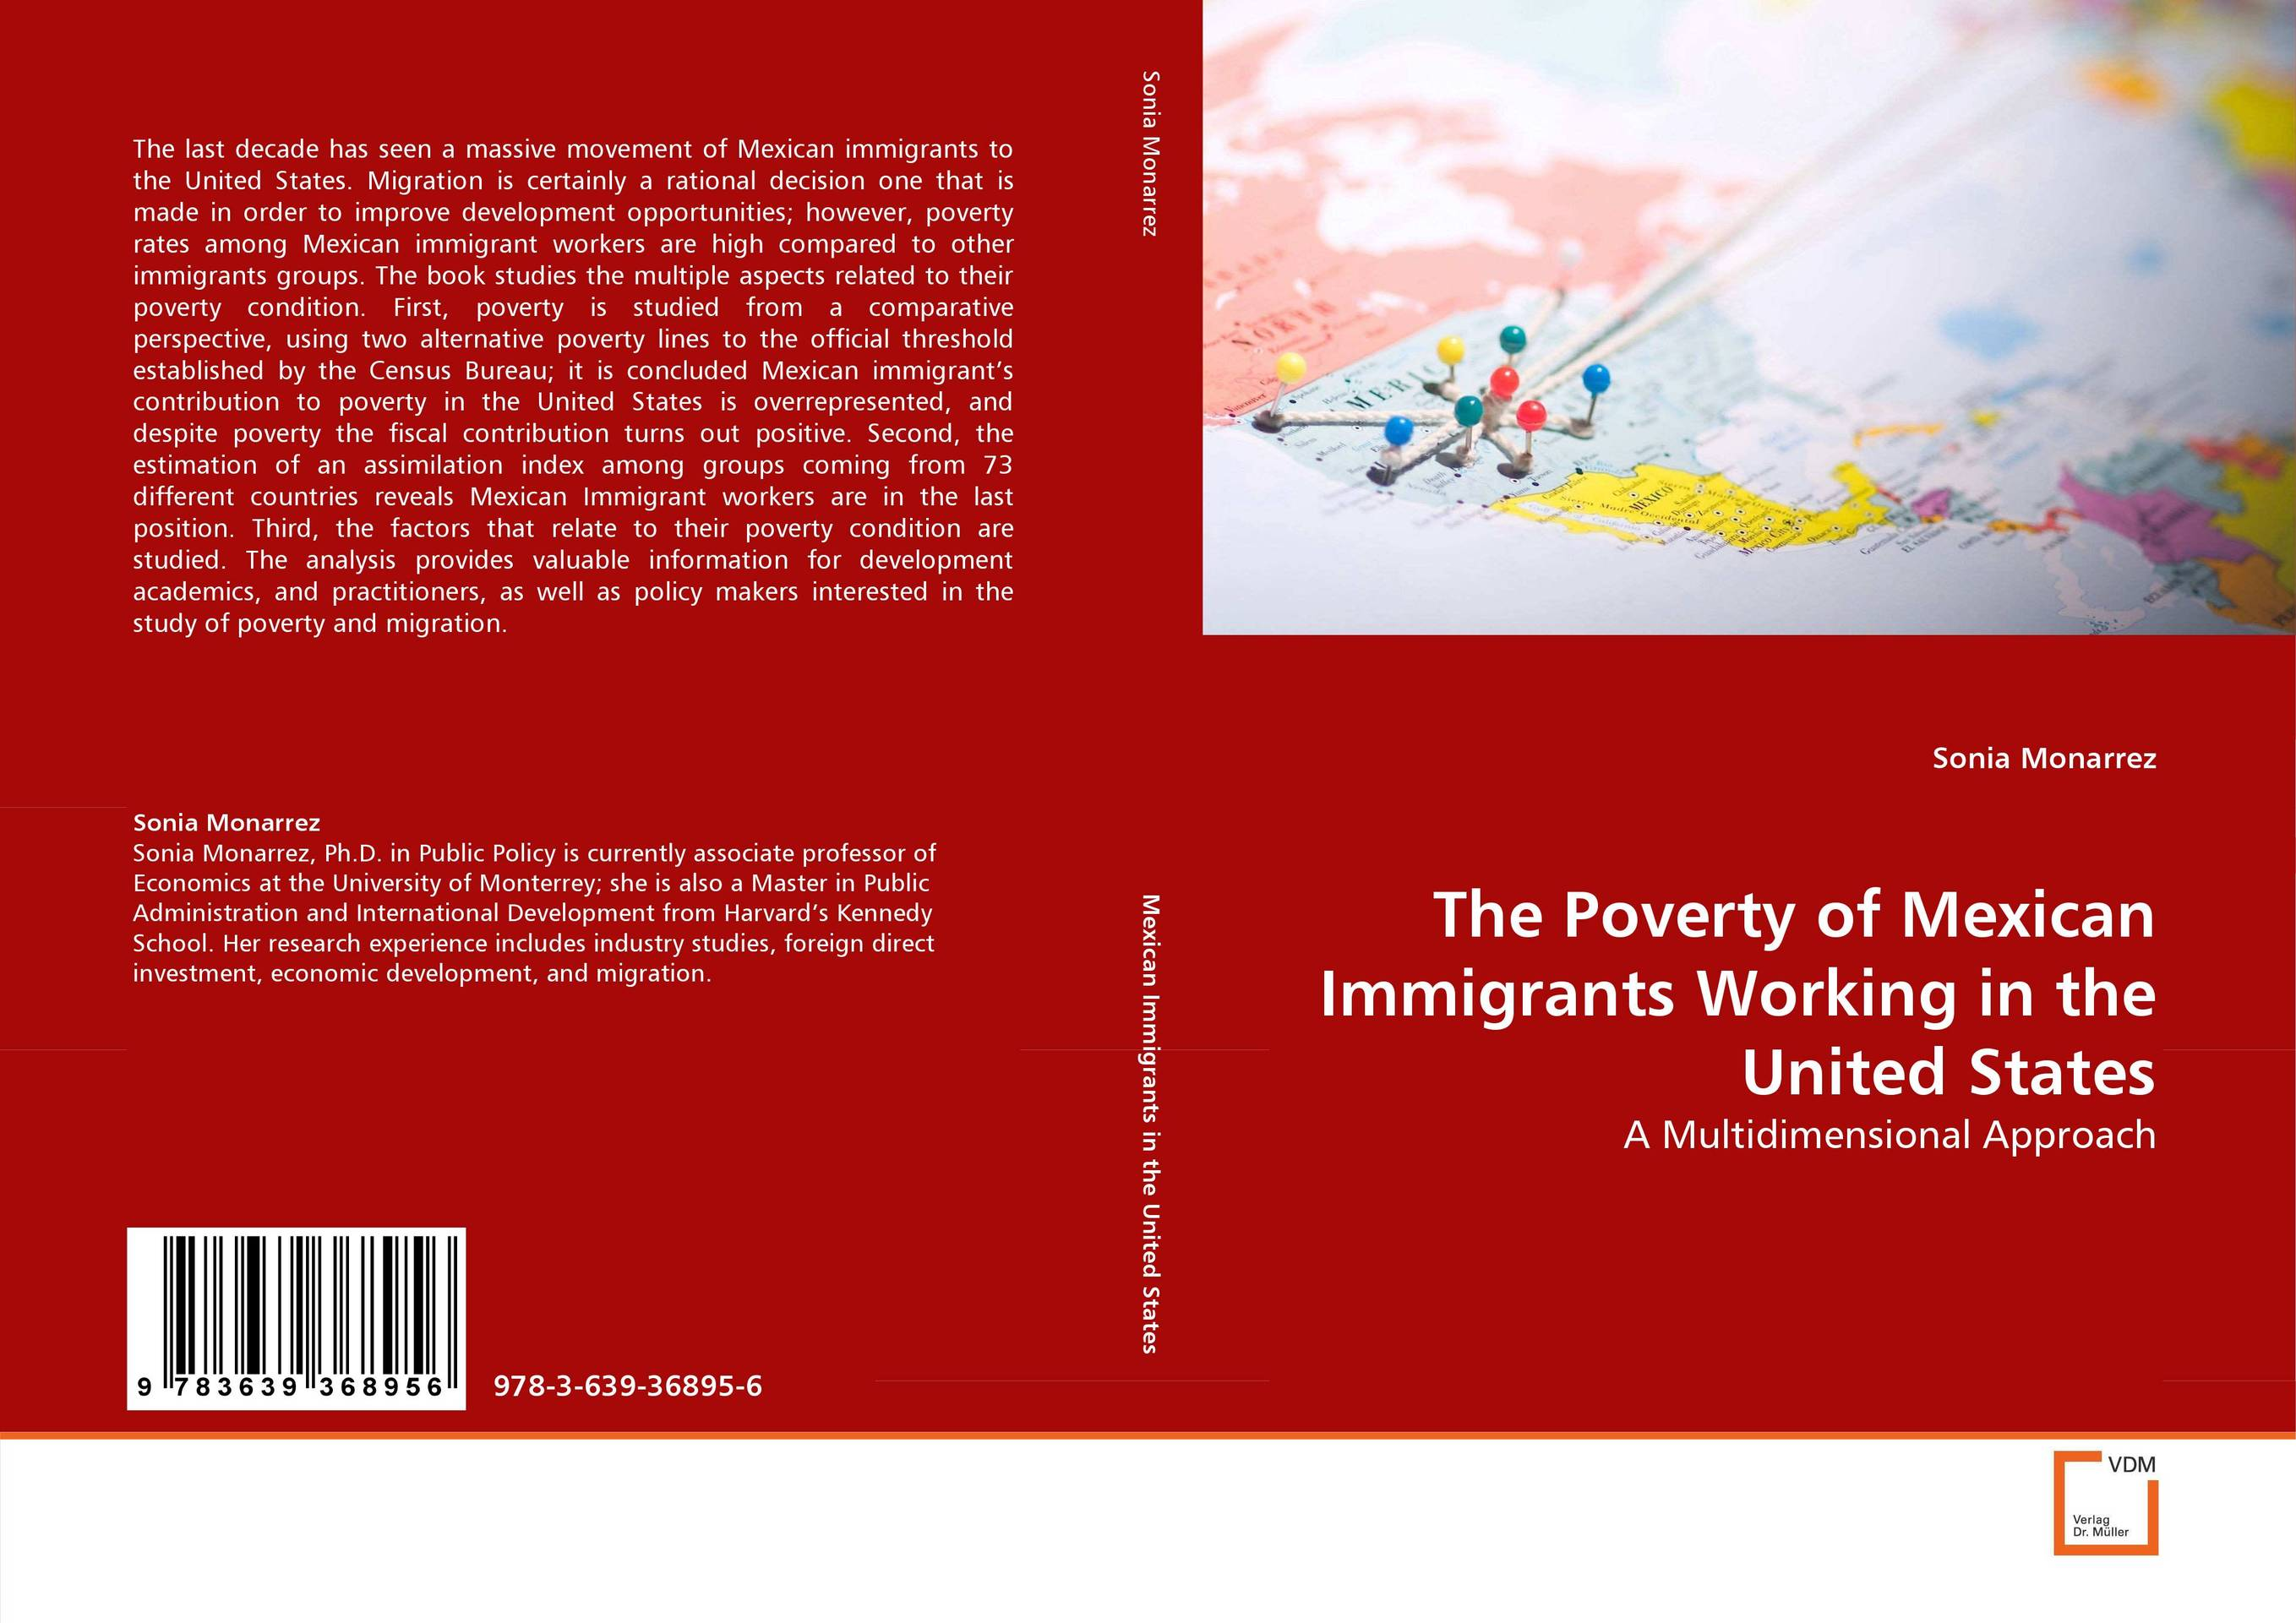 The Poverty of Mexican Immigrants Working in the United States united as one